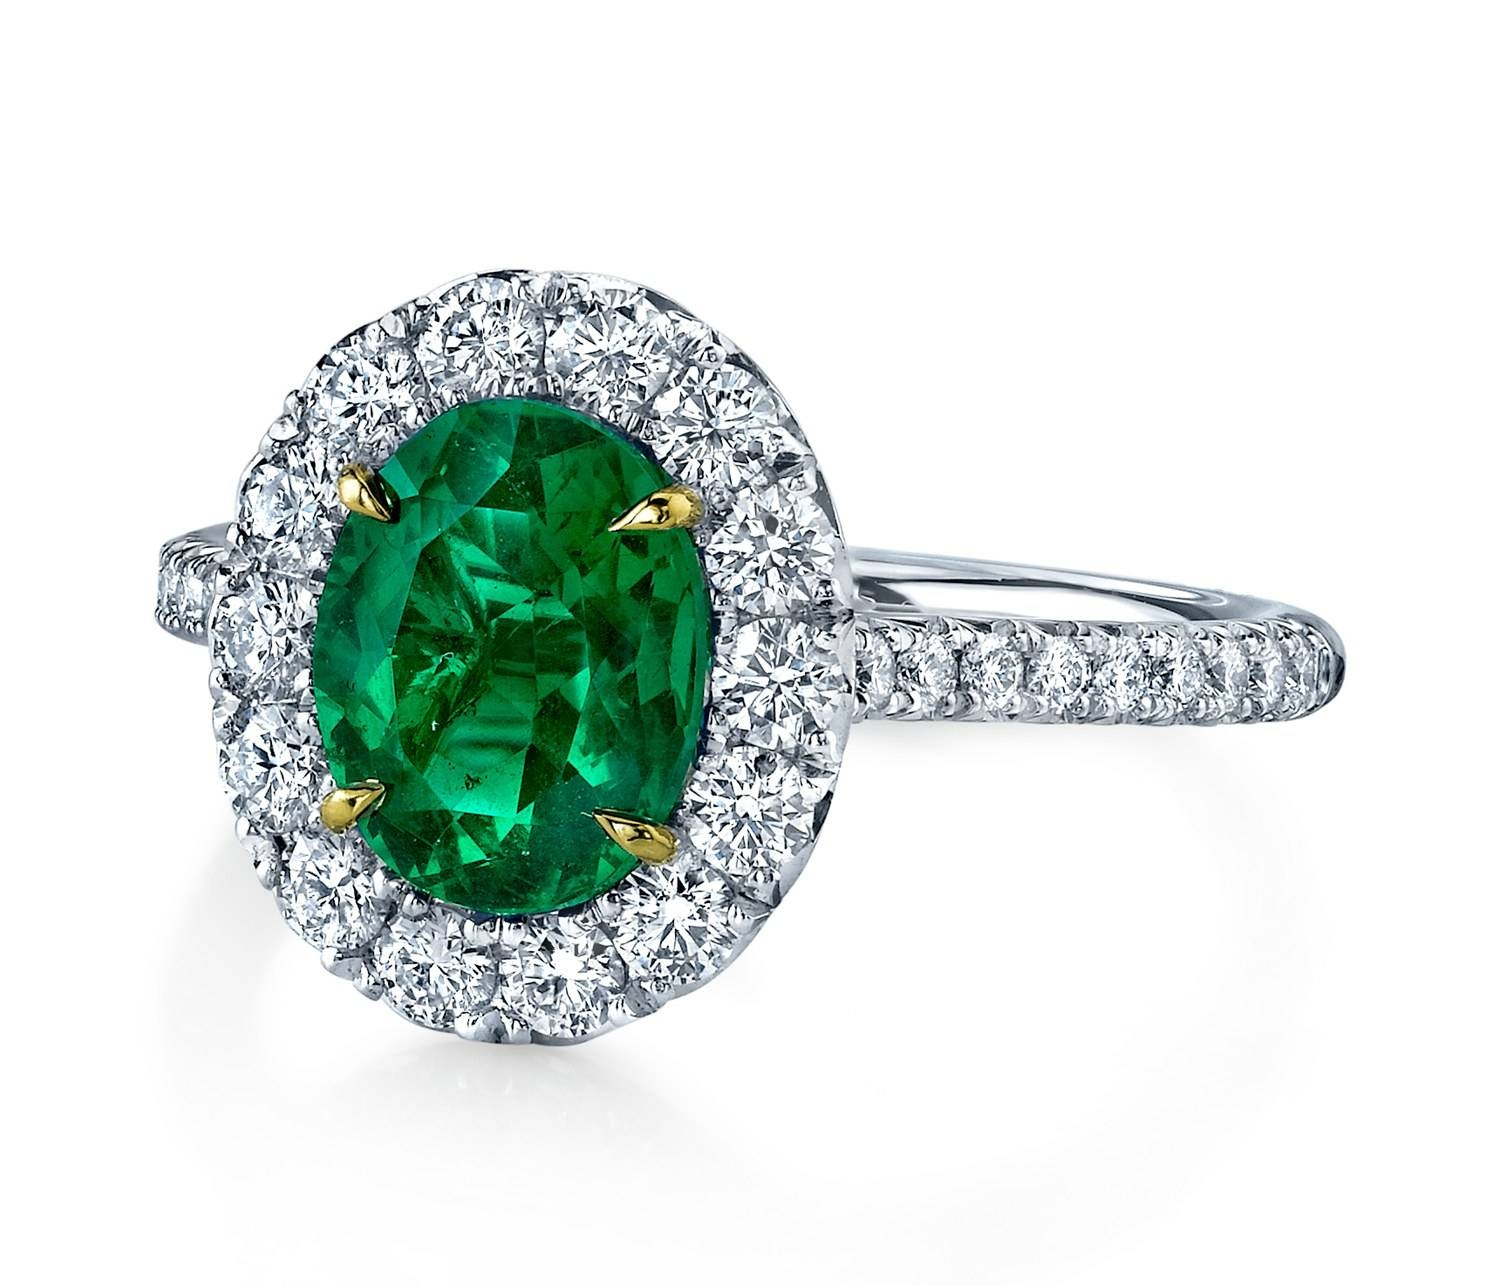 30 Diamond Engagement Rings So Sparkly You'll Need Sunglasses Regarding Engagement Rings With Emerald (Gallery 13 of 15)